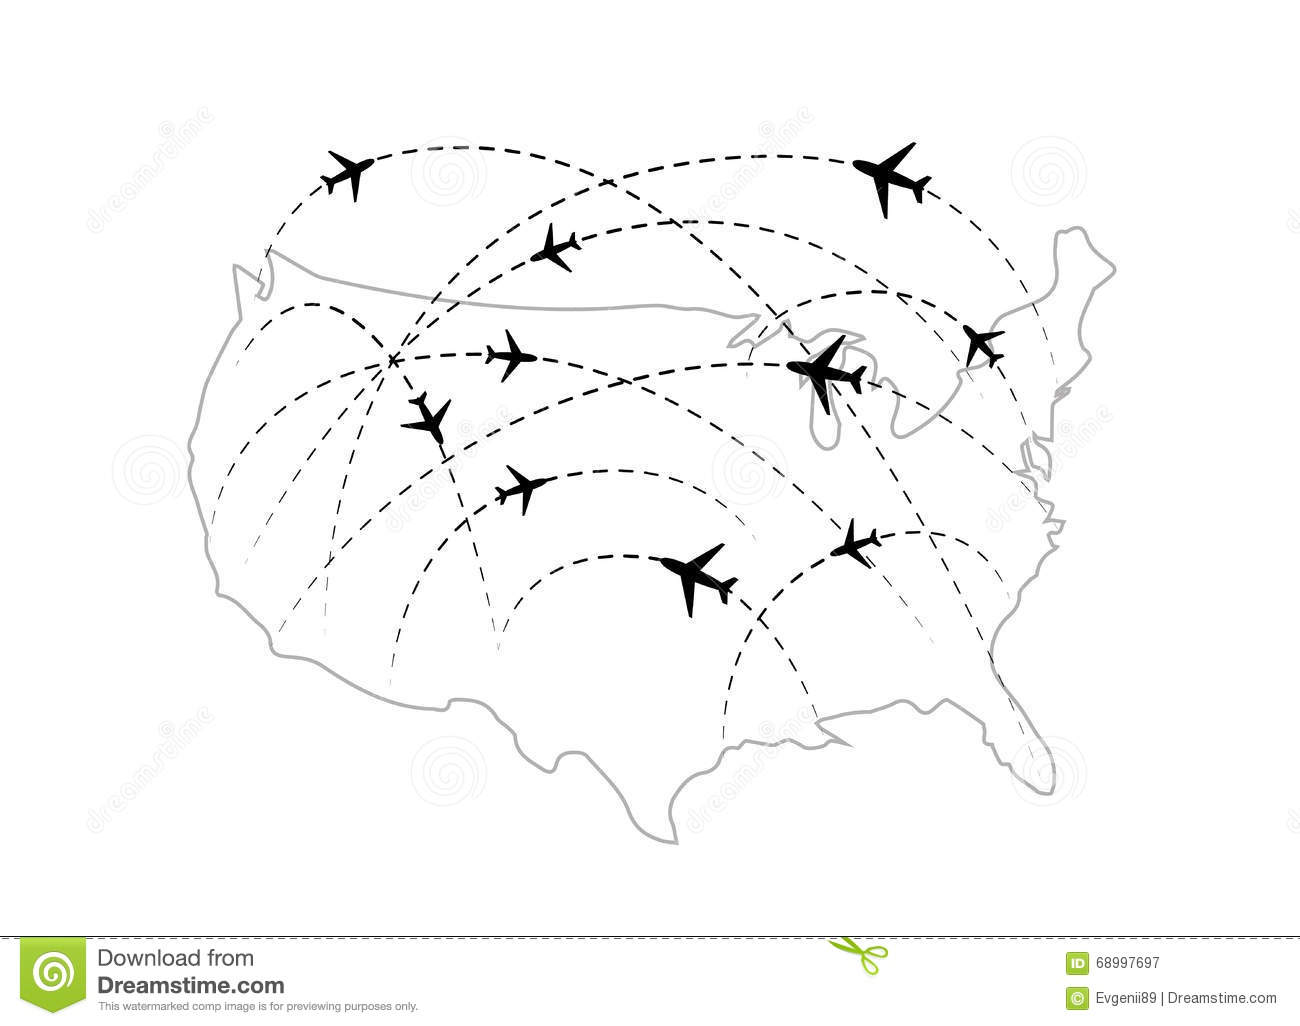 Usa Map Black.Air Routes With Black Plane Icons On Usa Map Stock Illustration